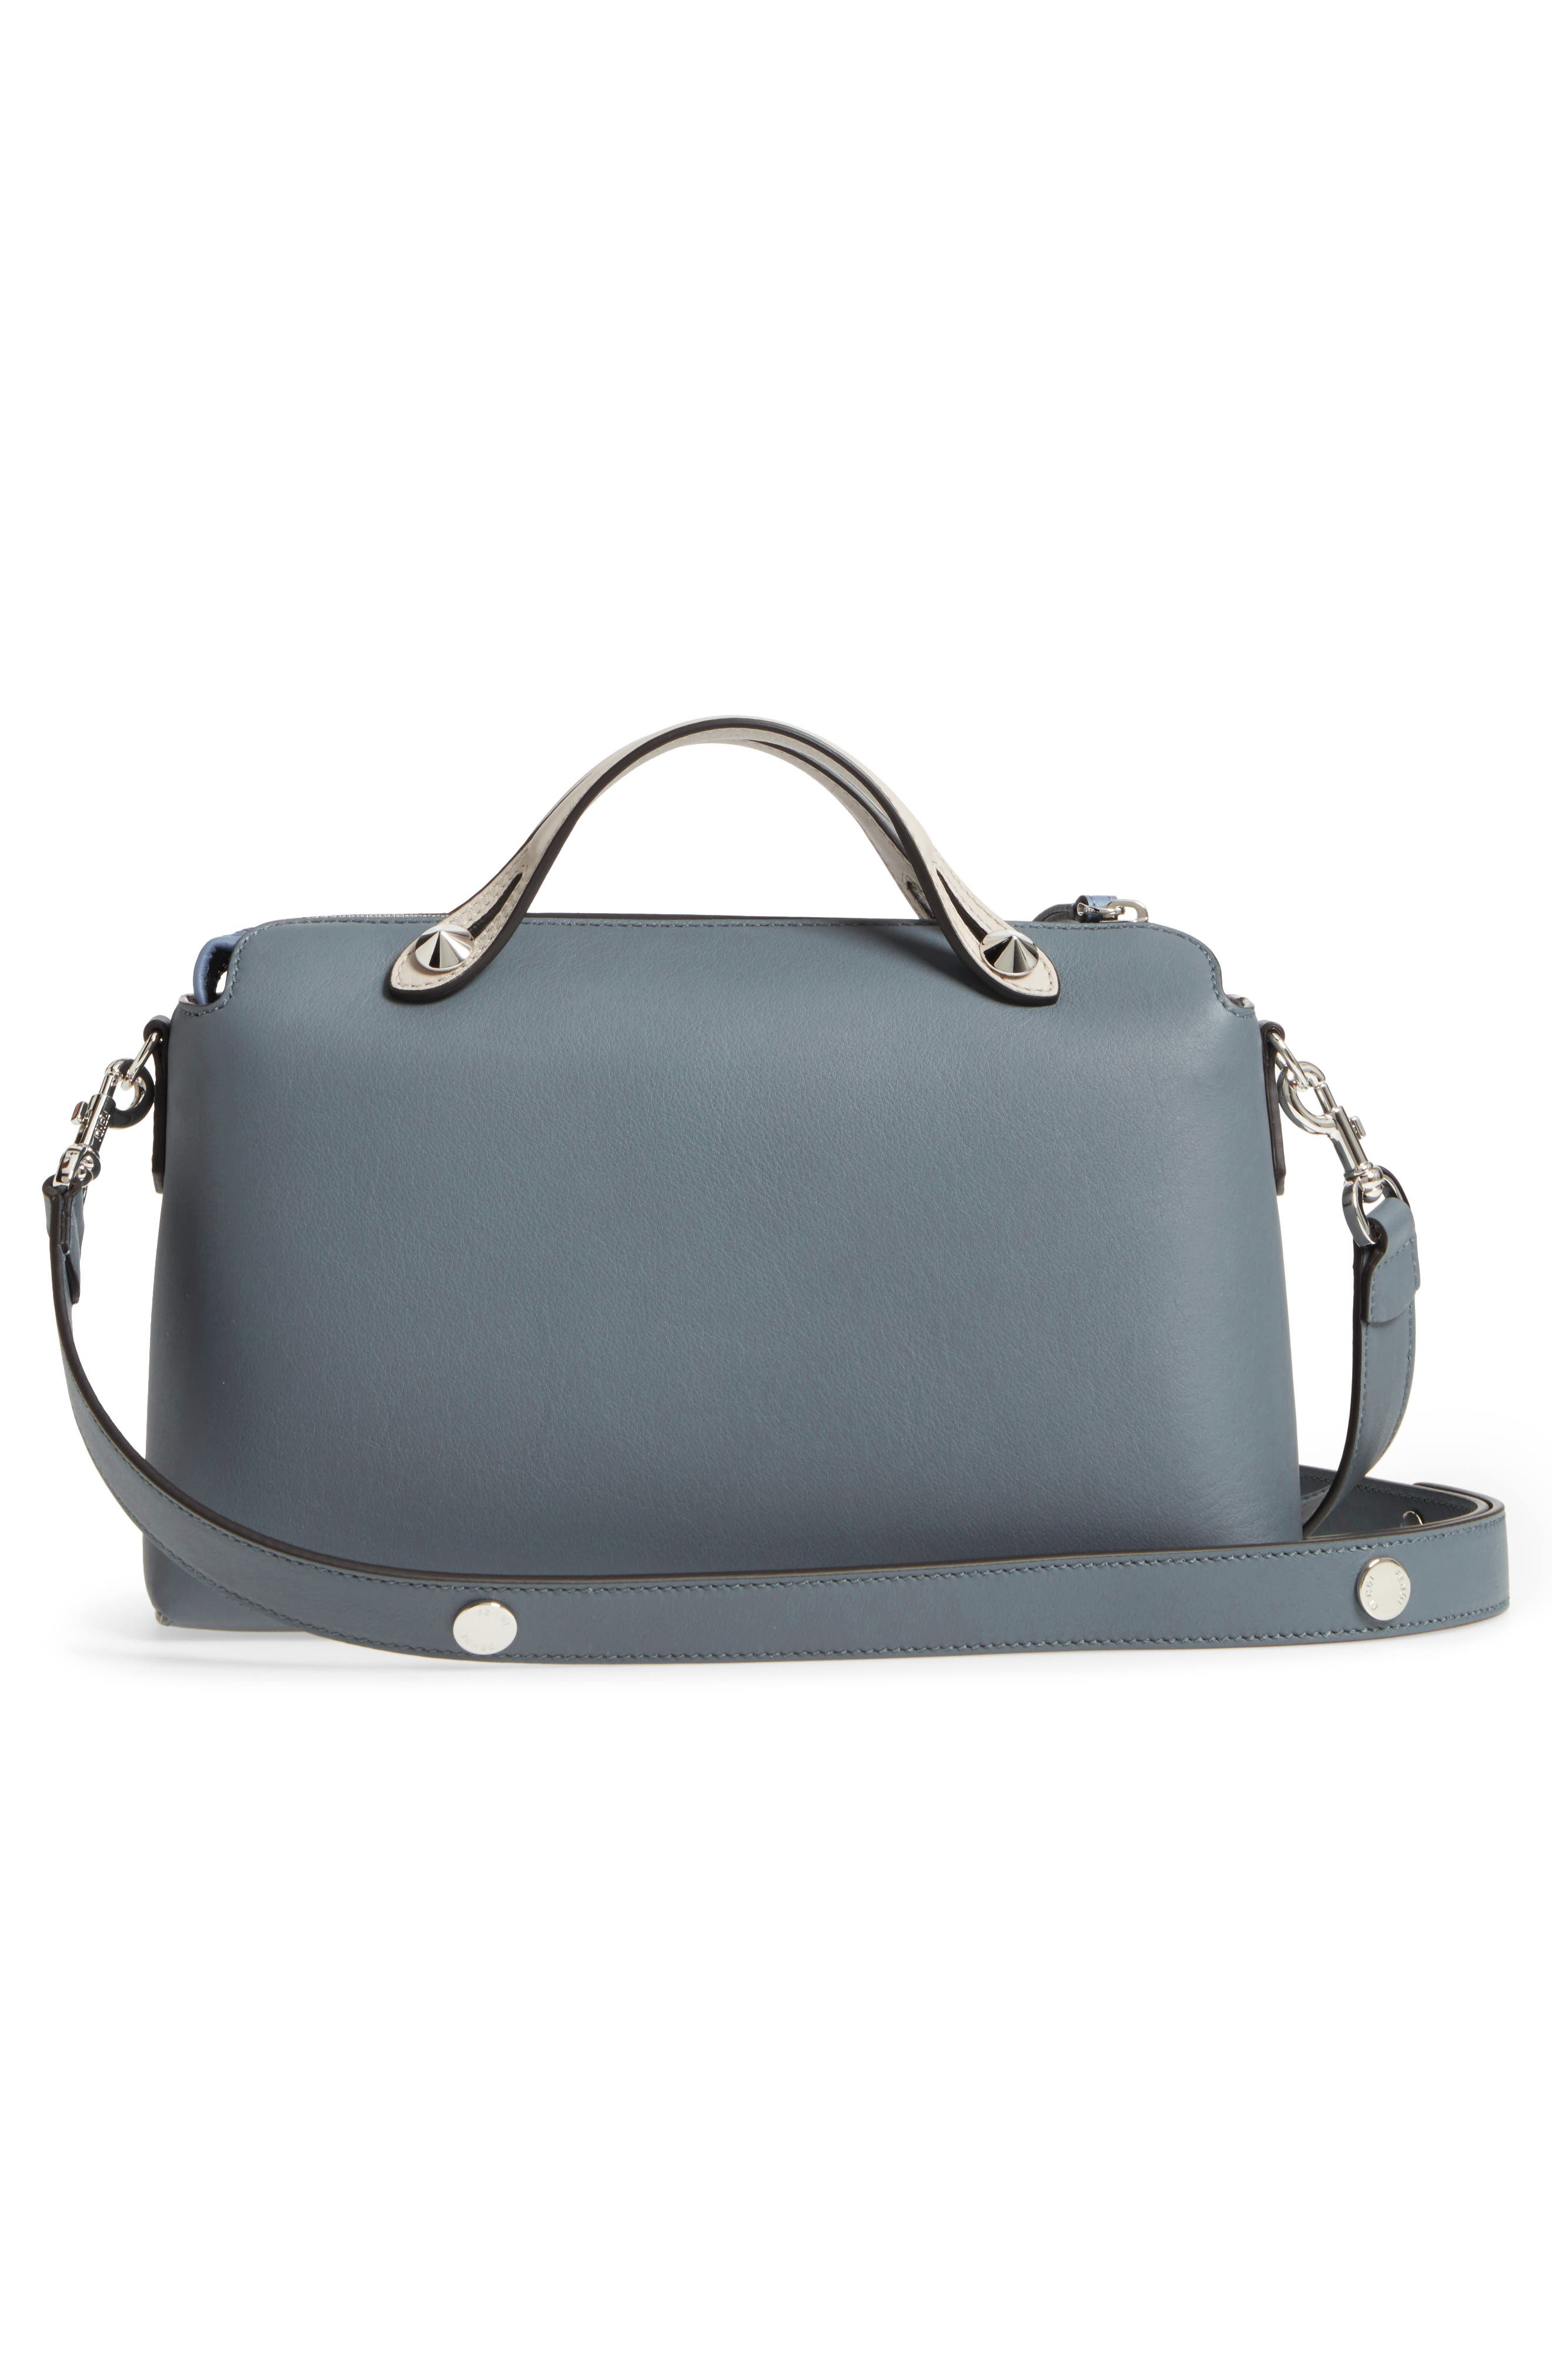 'Medium By the Way' Colorblock Leather Shoulder Bag,                             Alternate thumbnail 3, color,                             Blue